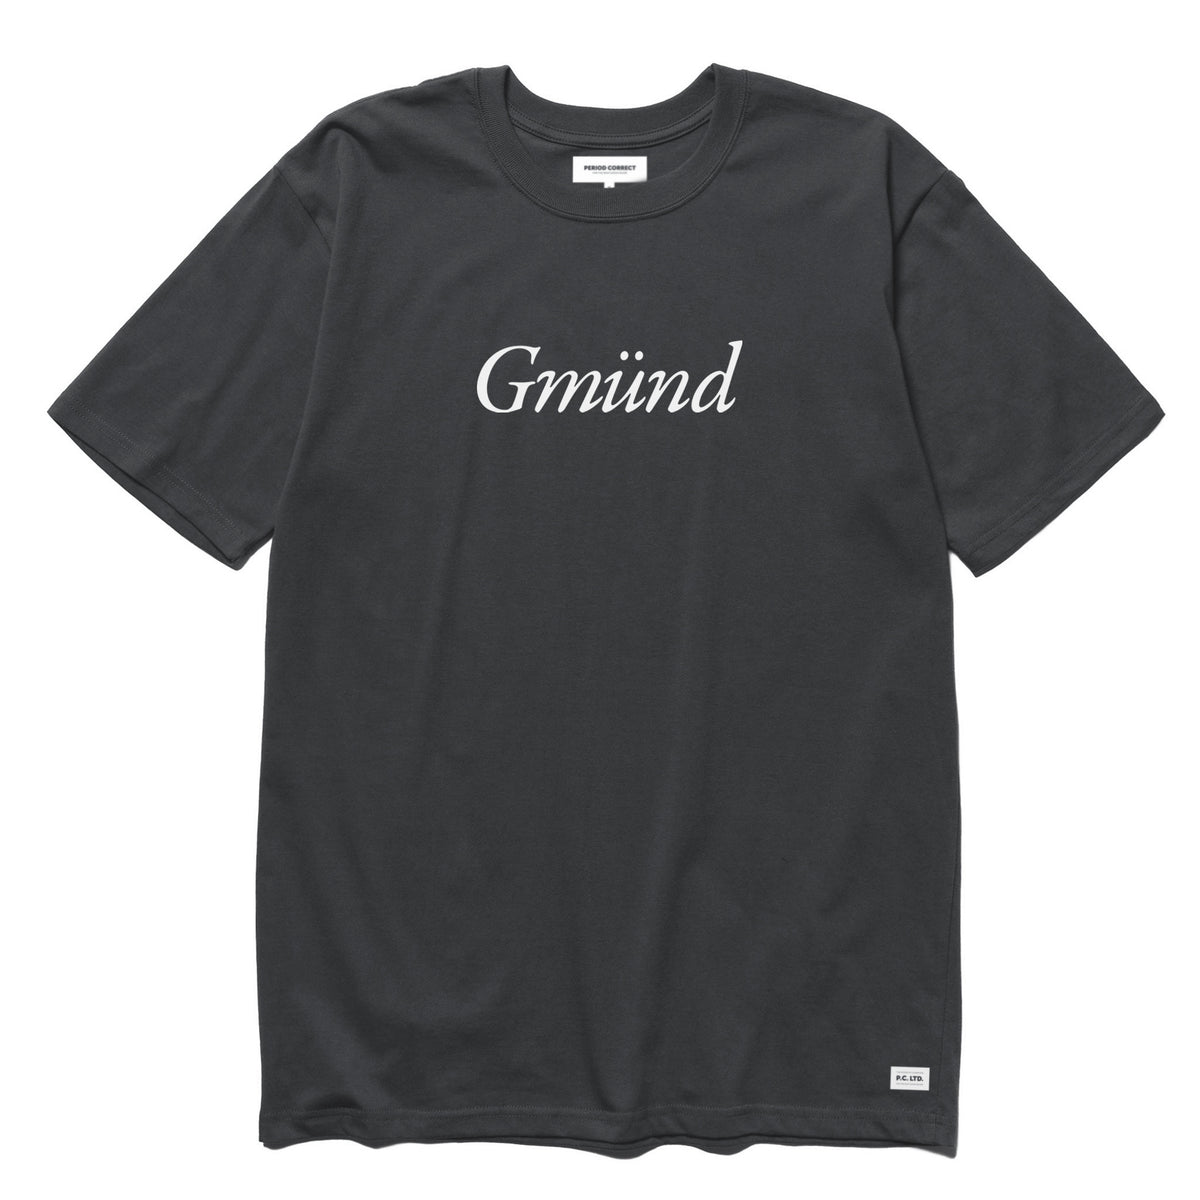 PC GMUND T-SHIRT GREY